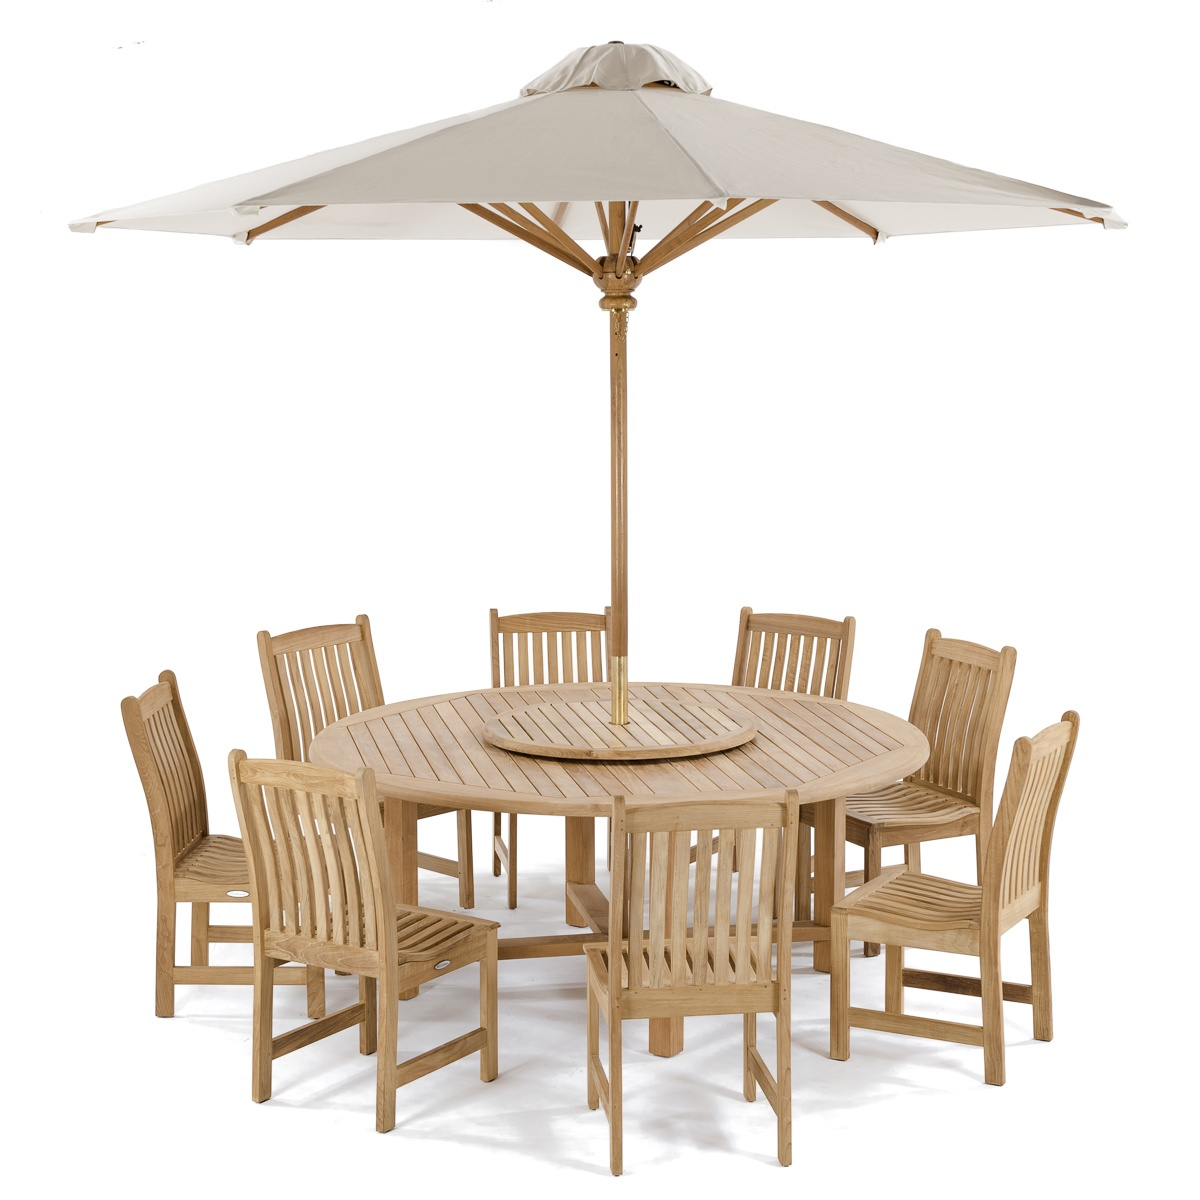 Teak wood round dining set westminster teak outdoor furniture - Round teak table and chairs ...